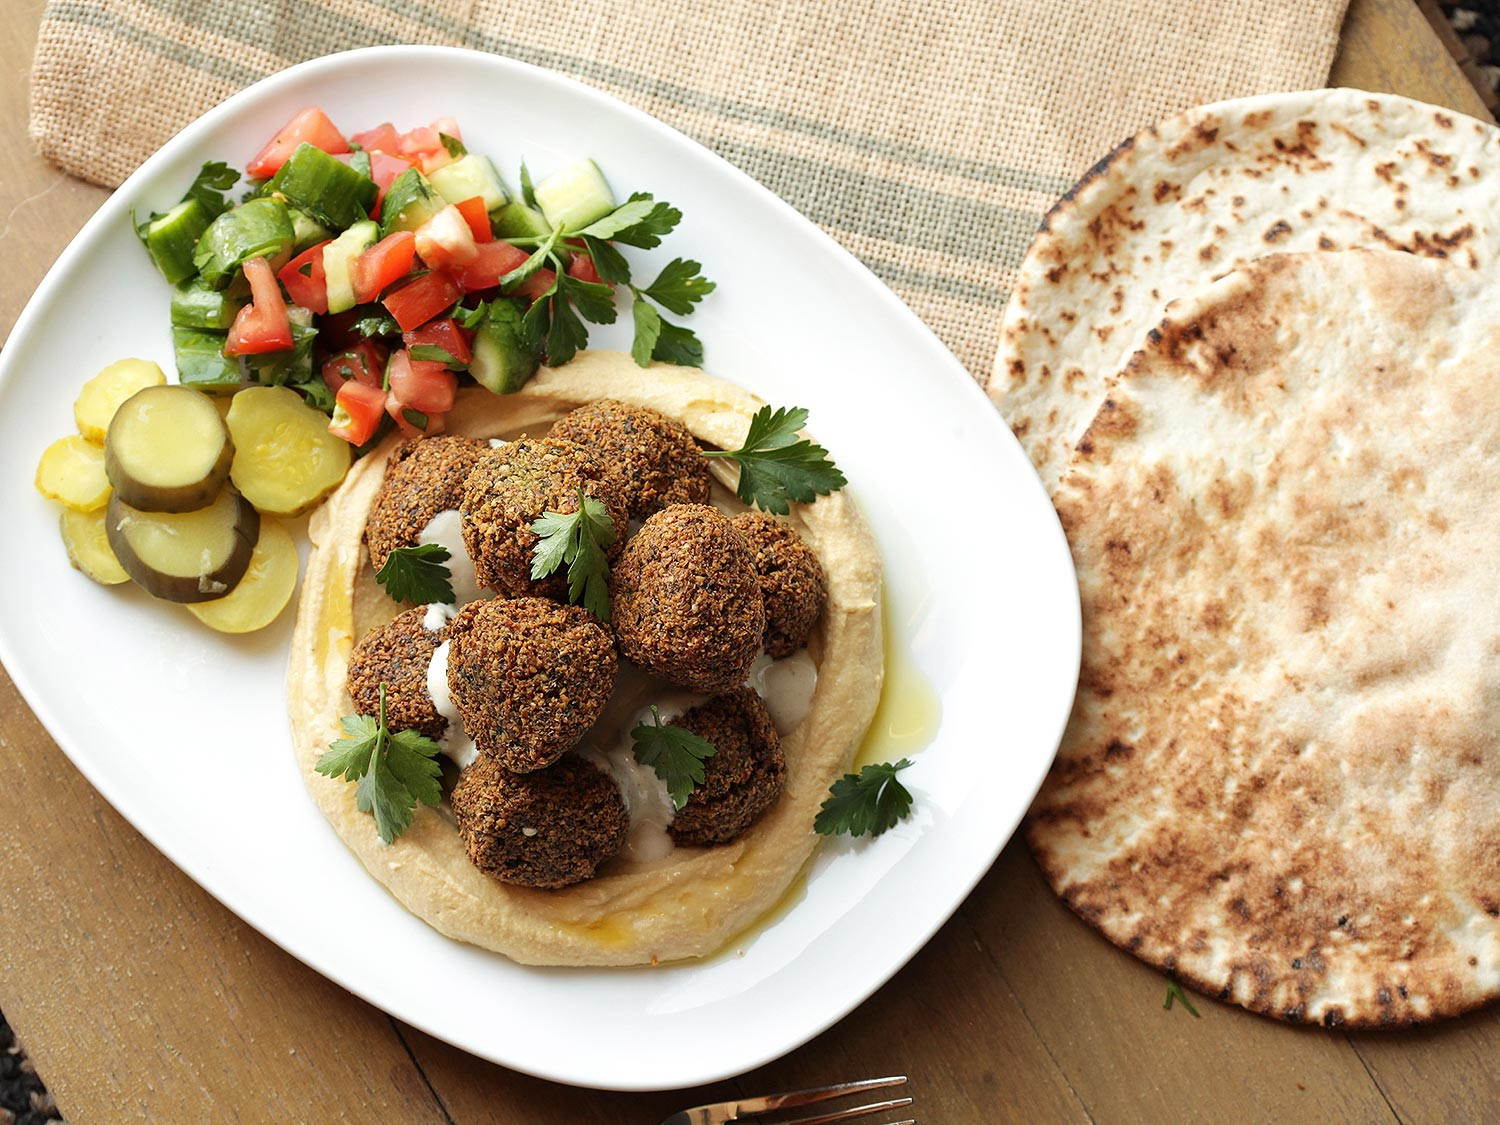 Easy Middle Eastern Recipes  12 Middle Eastern Recipes From Baba Ganoush to Zhug